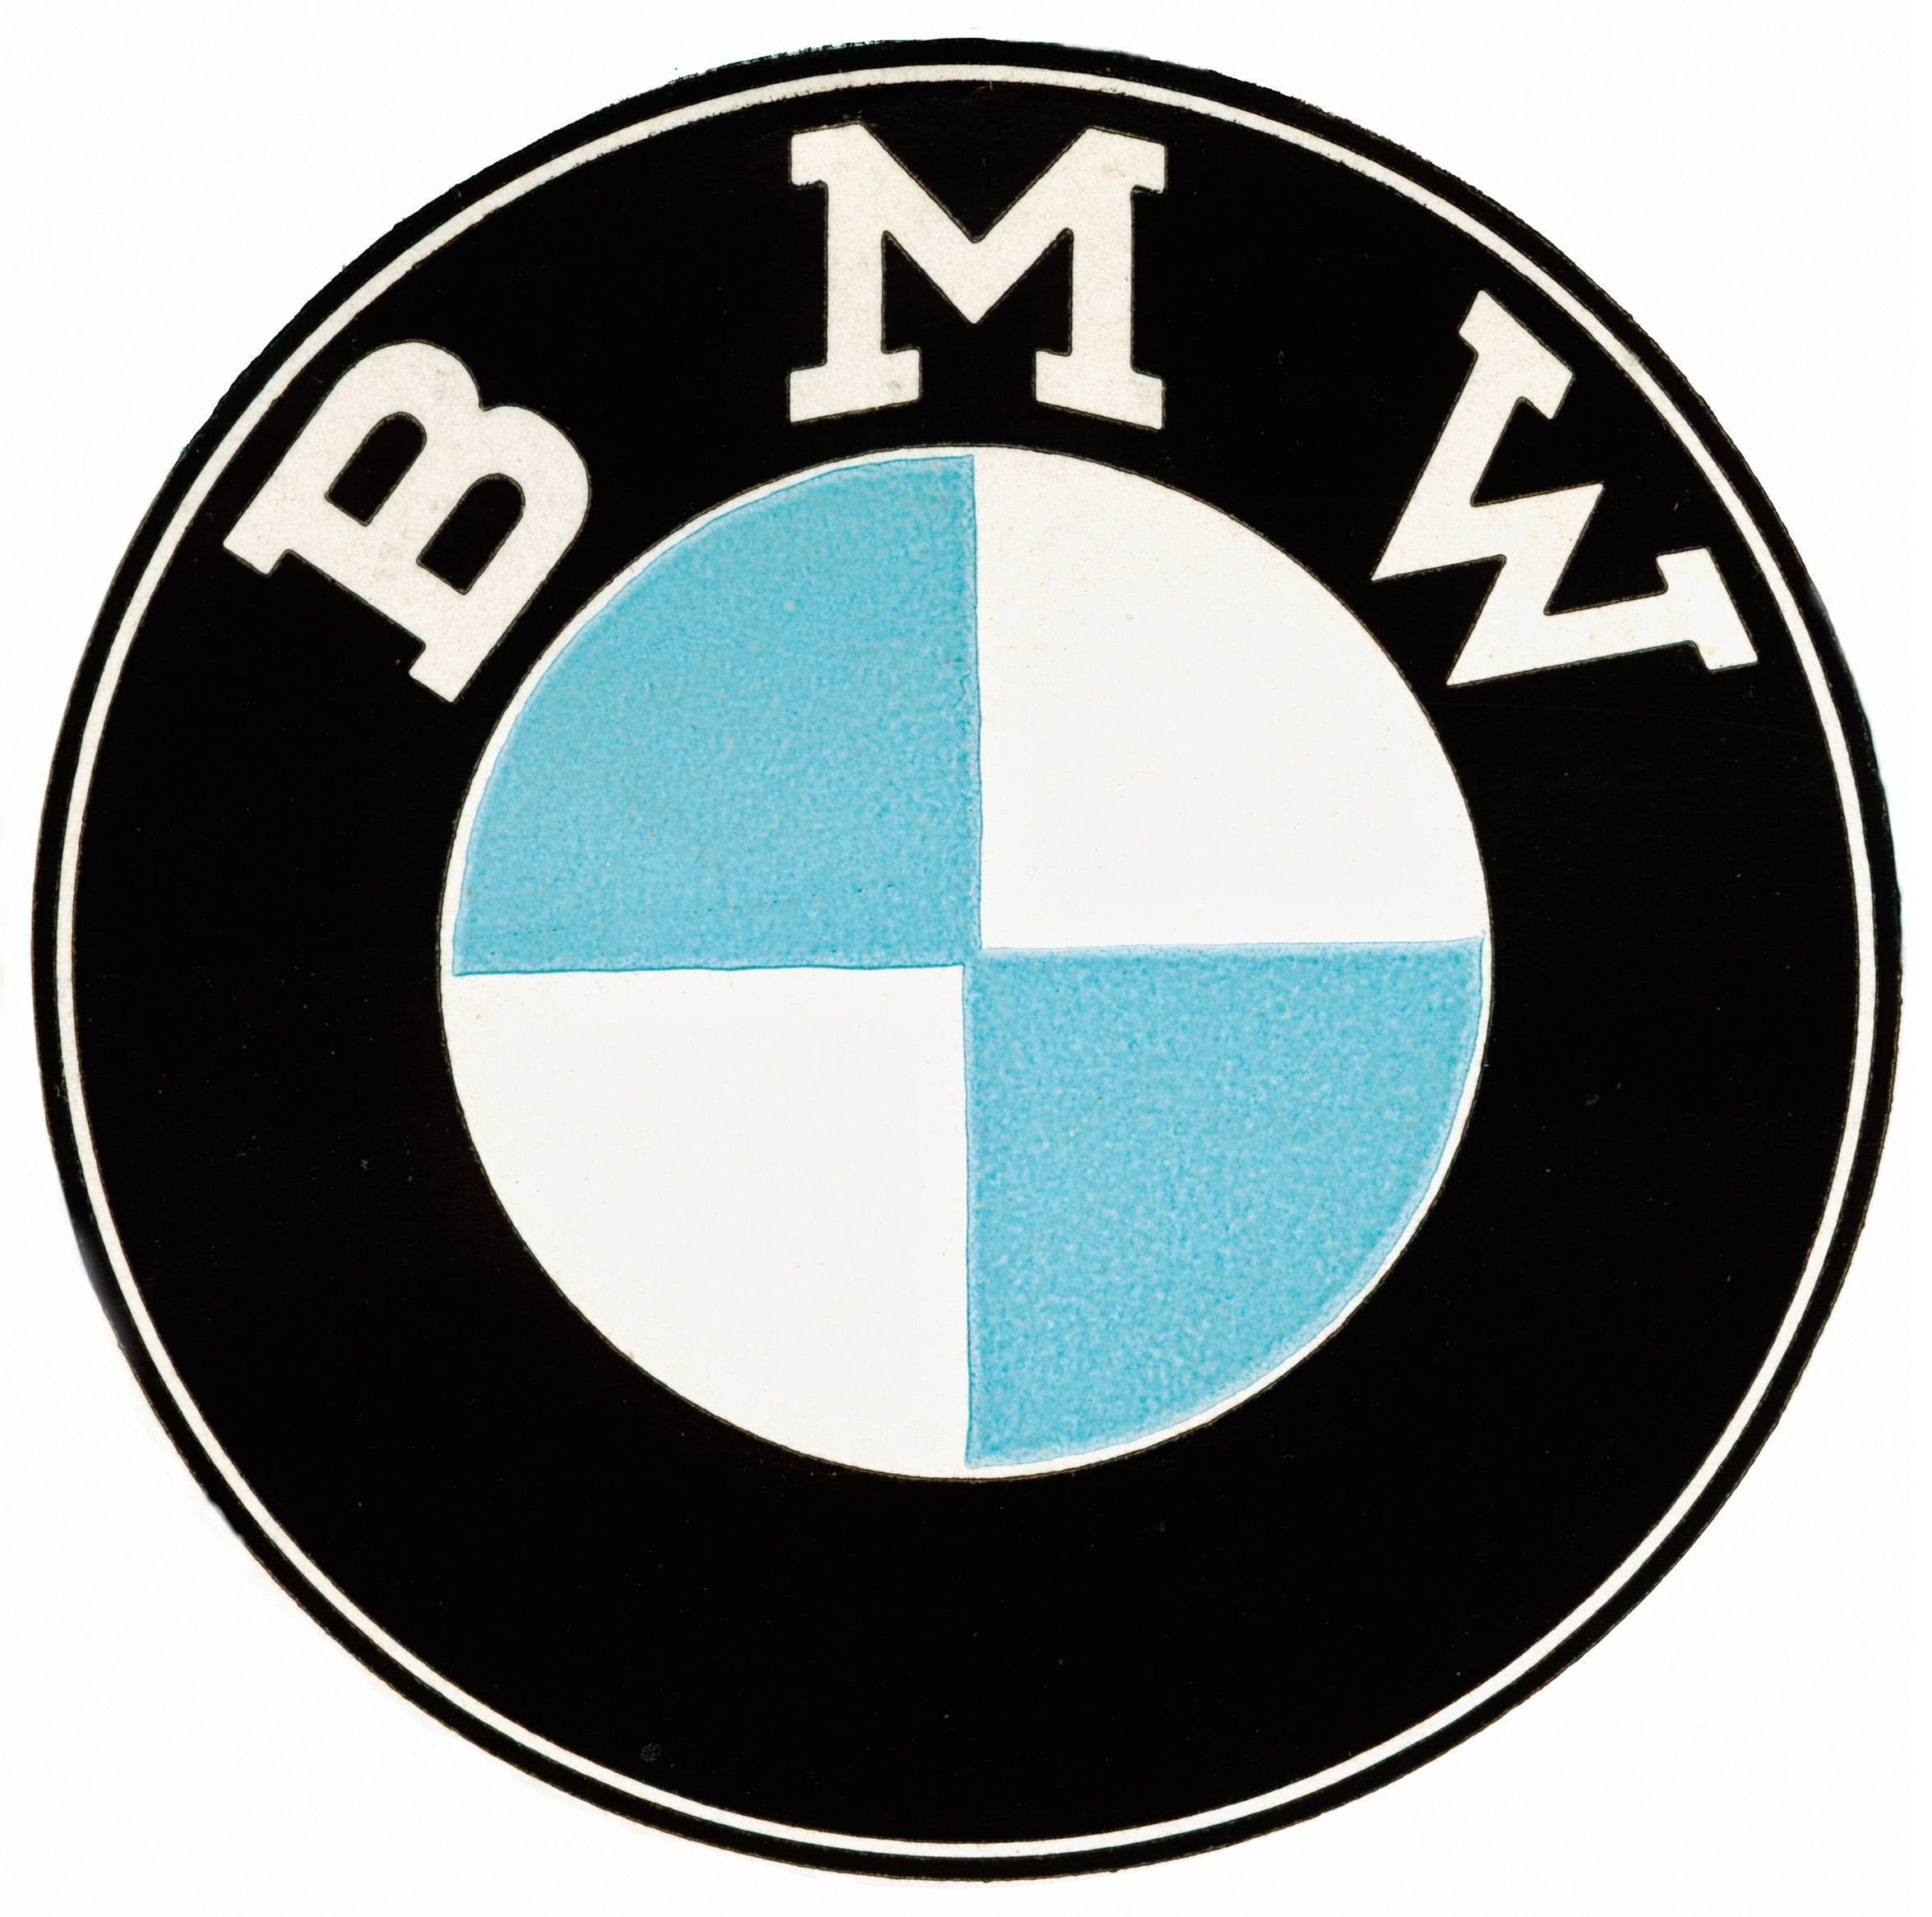 Latest Marca Bmw 1936 30 S Logos Pinterest Bmw And Cars Free Download